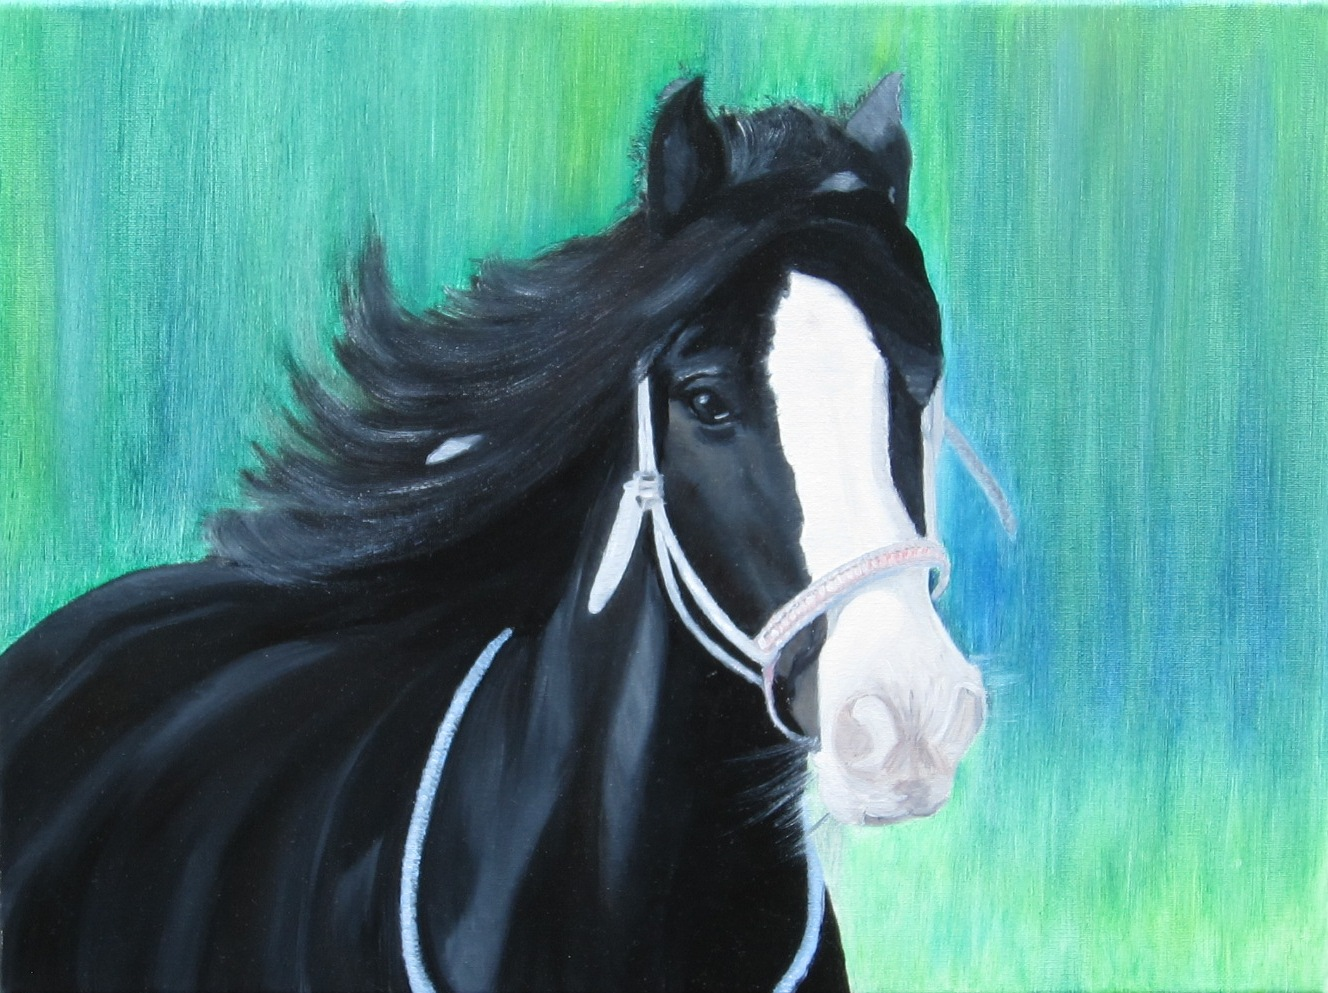 """Horse"" - oil, canvas 30х40, 2017, Private collection Belgium"